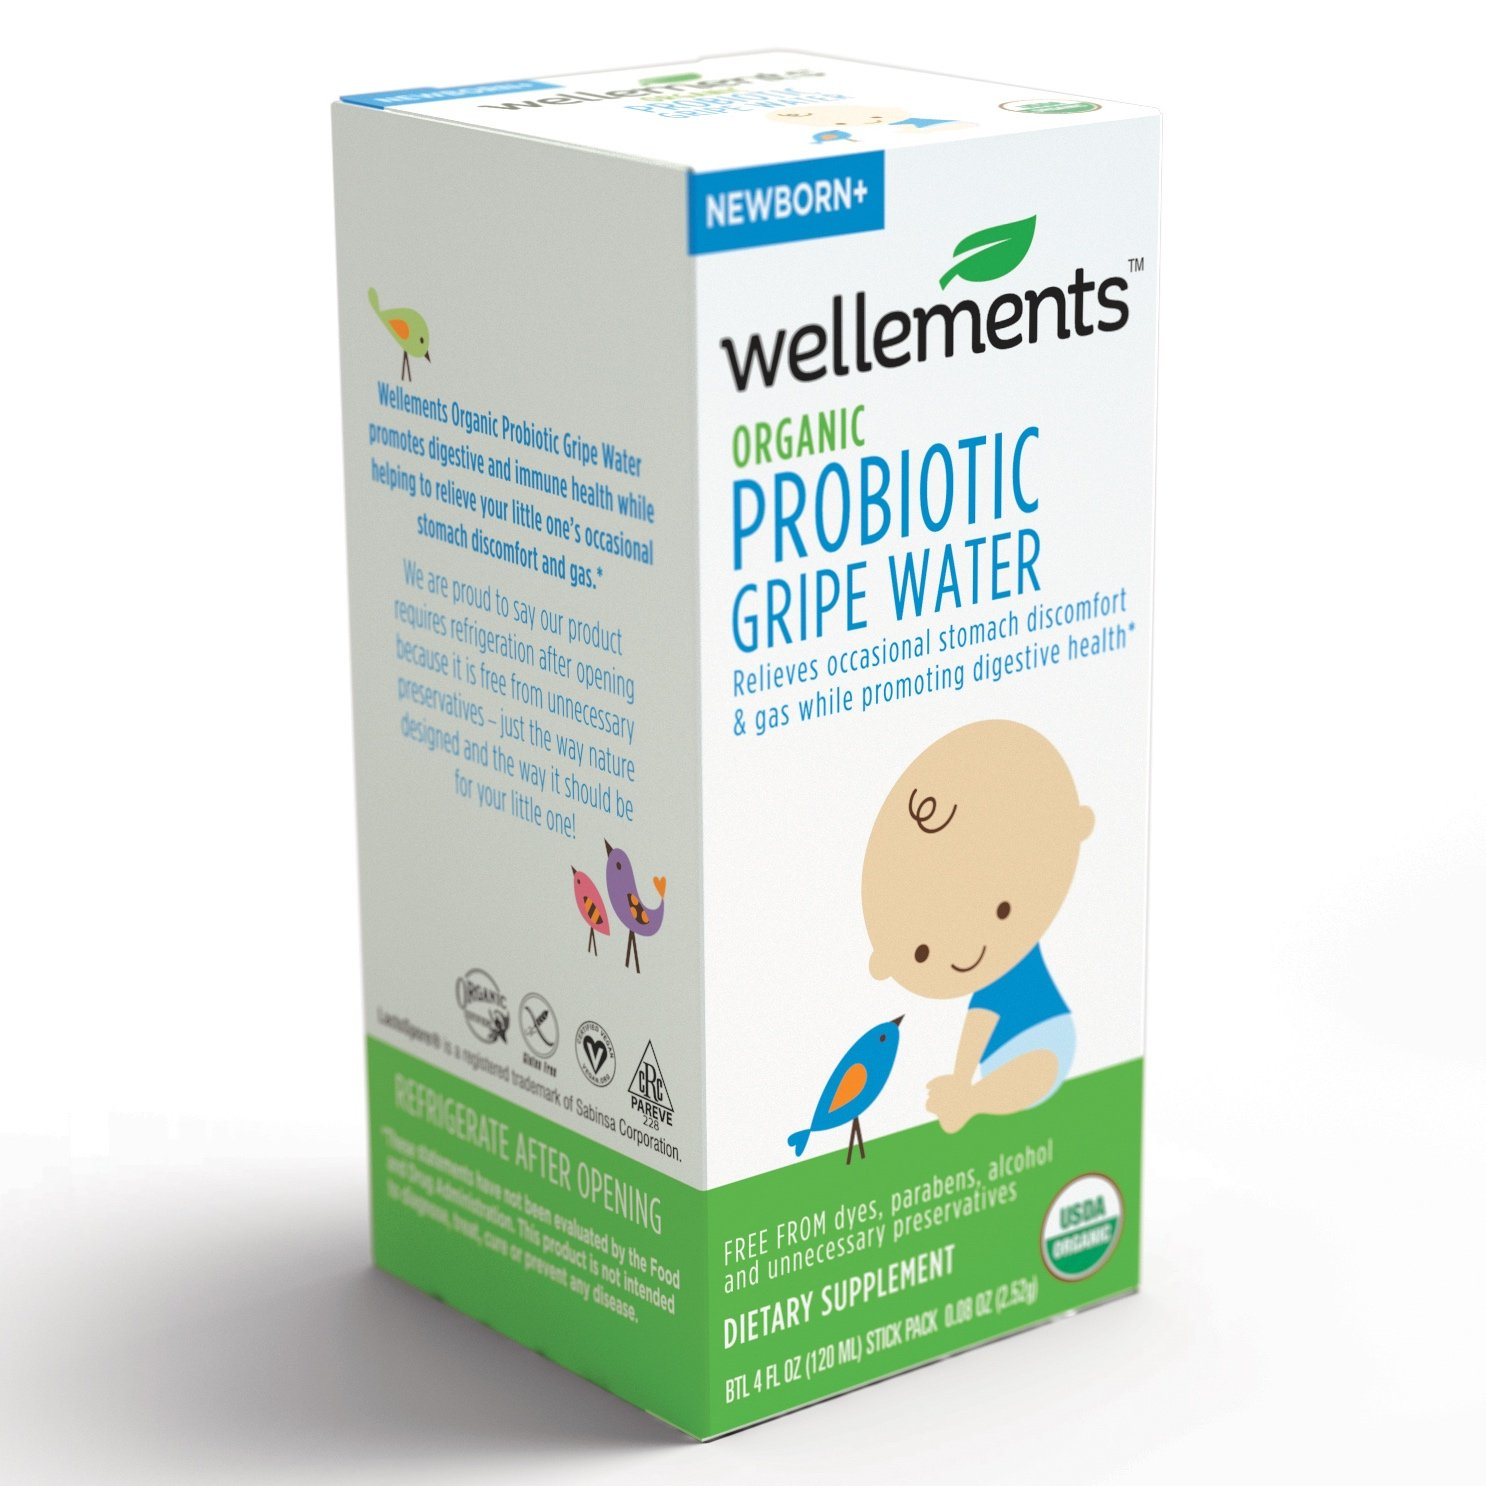 Wellements Organic Gripe Water for Tummy, 4 Fl Oz, 2 Count, Pediatrician Recommended to Ease Infant Stomach Discomfort and Gas Wellements L.L.C.